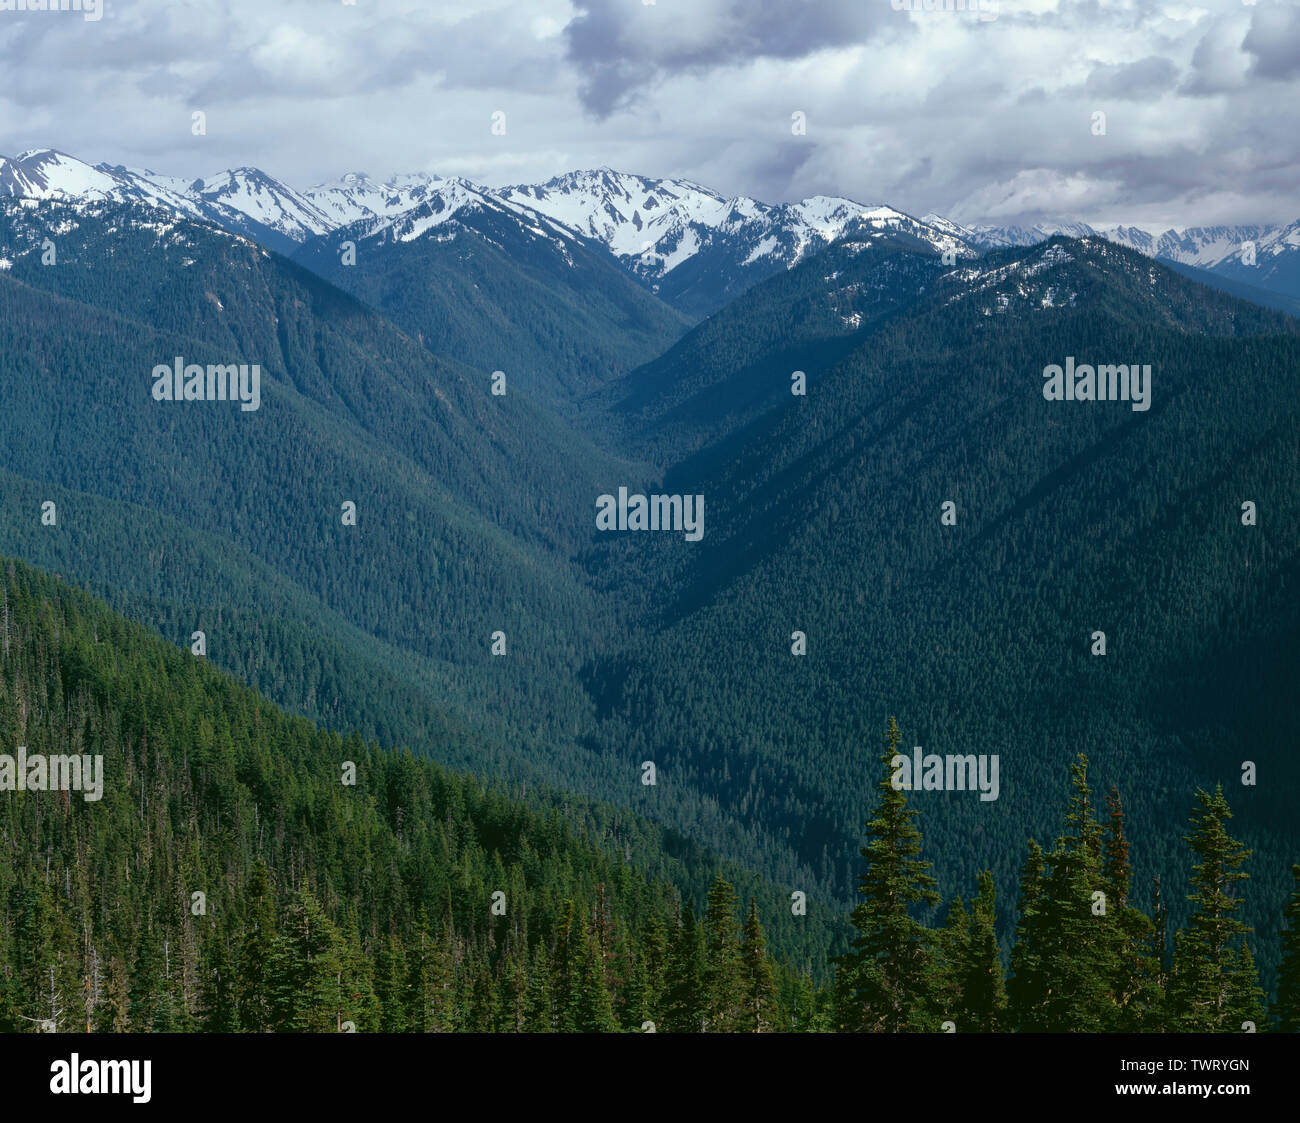 USA, Washington, Olympic National Park, Late spring view south from near Hurricane Ridge towards Lillian River Valley and McCartney Peak (top right). - Stock Image